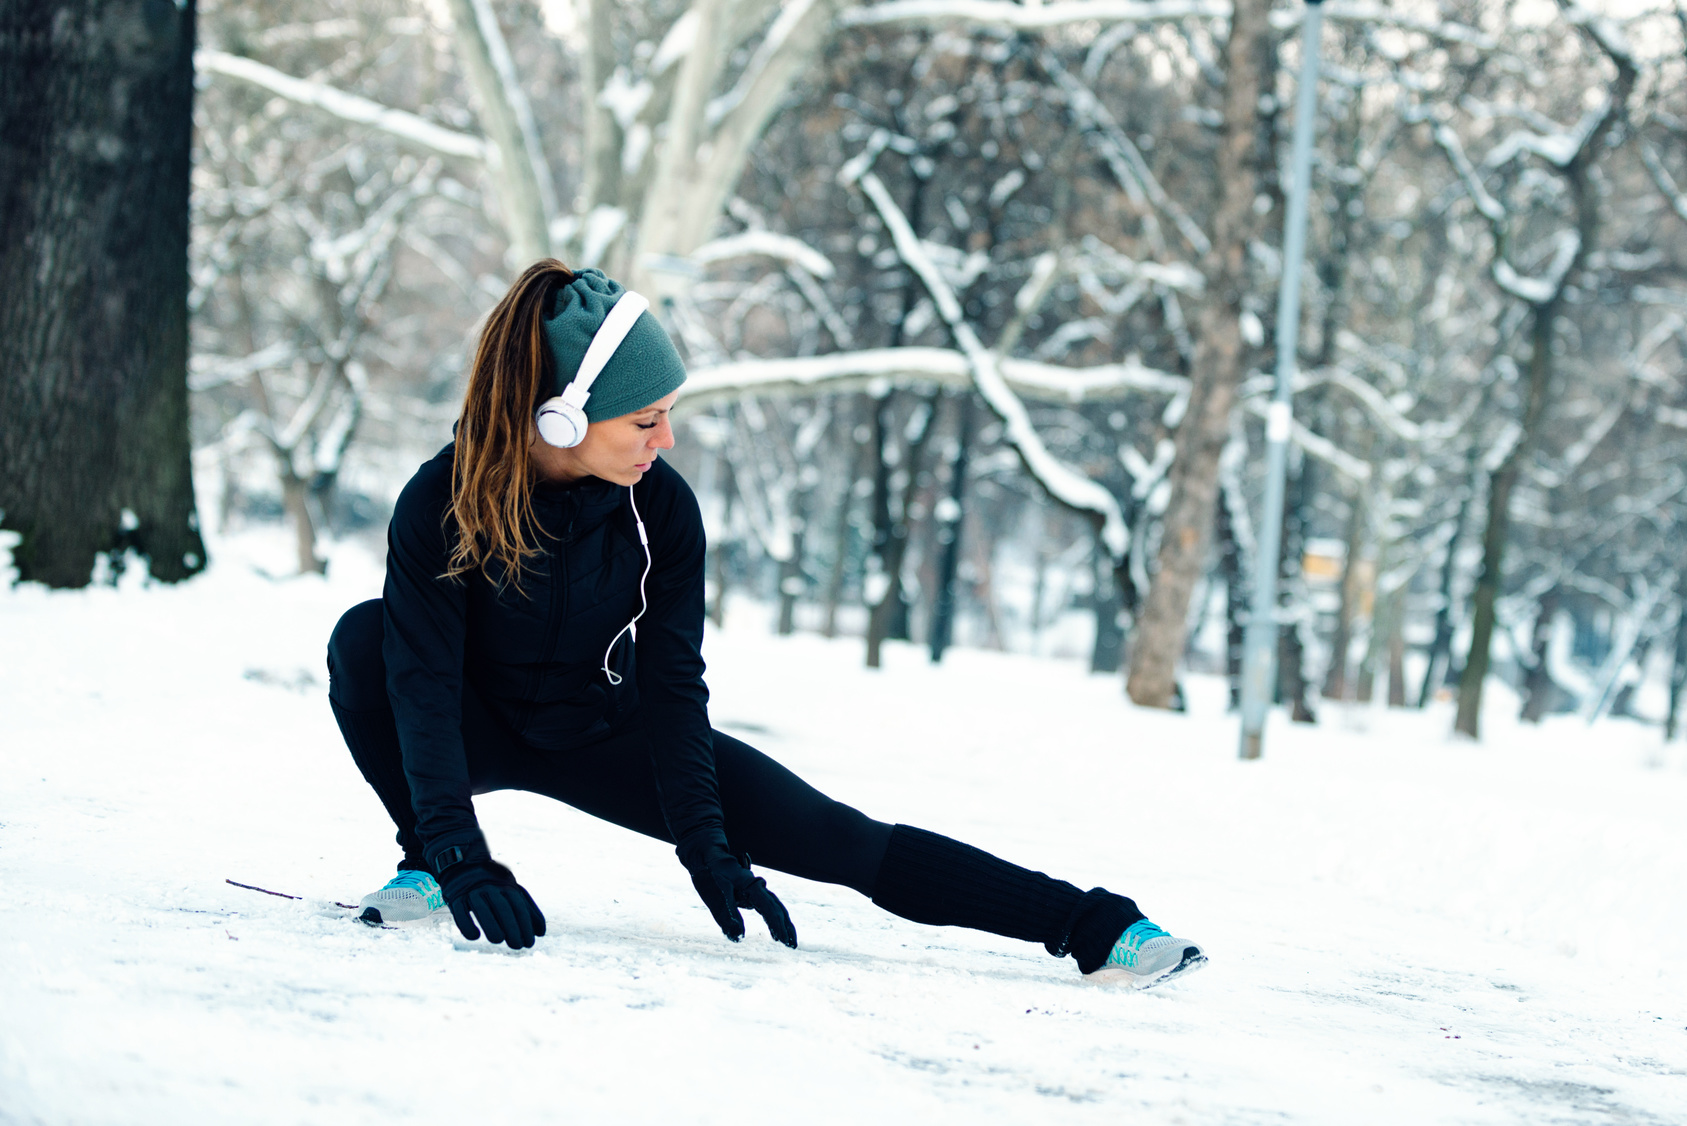 Exercising-healthy-in-winter.jpg